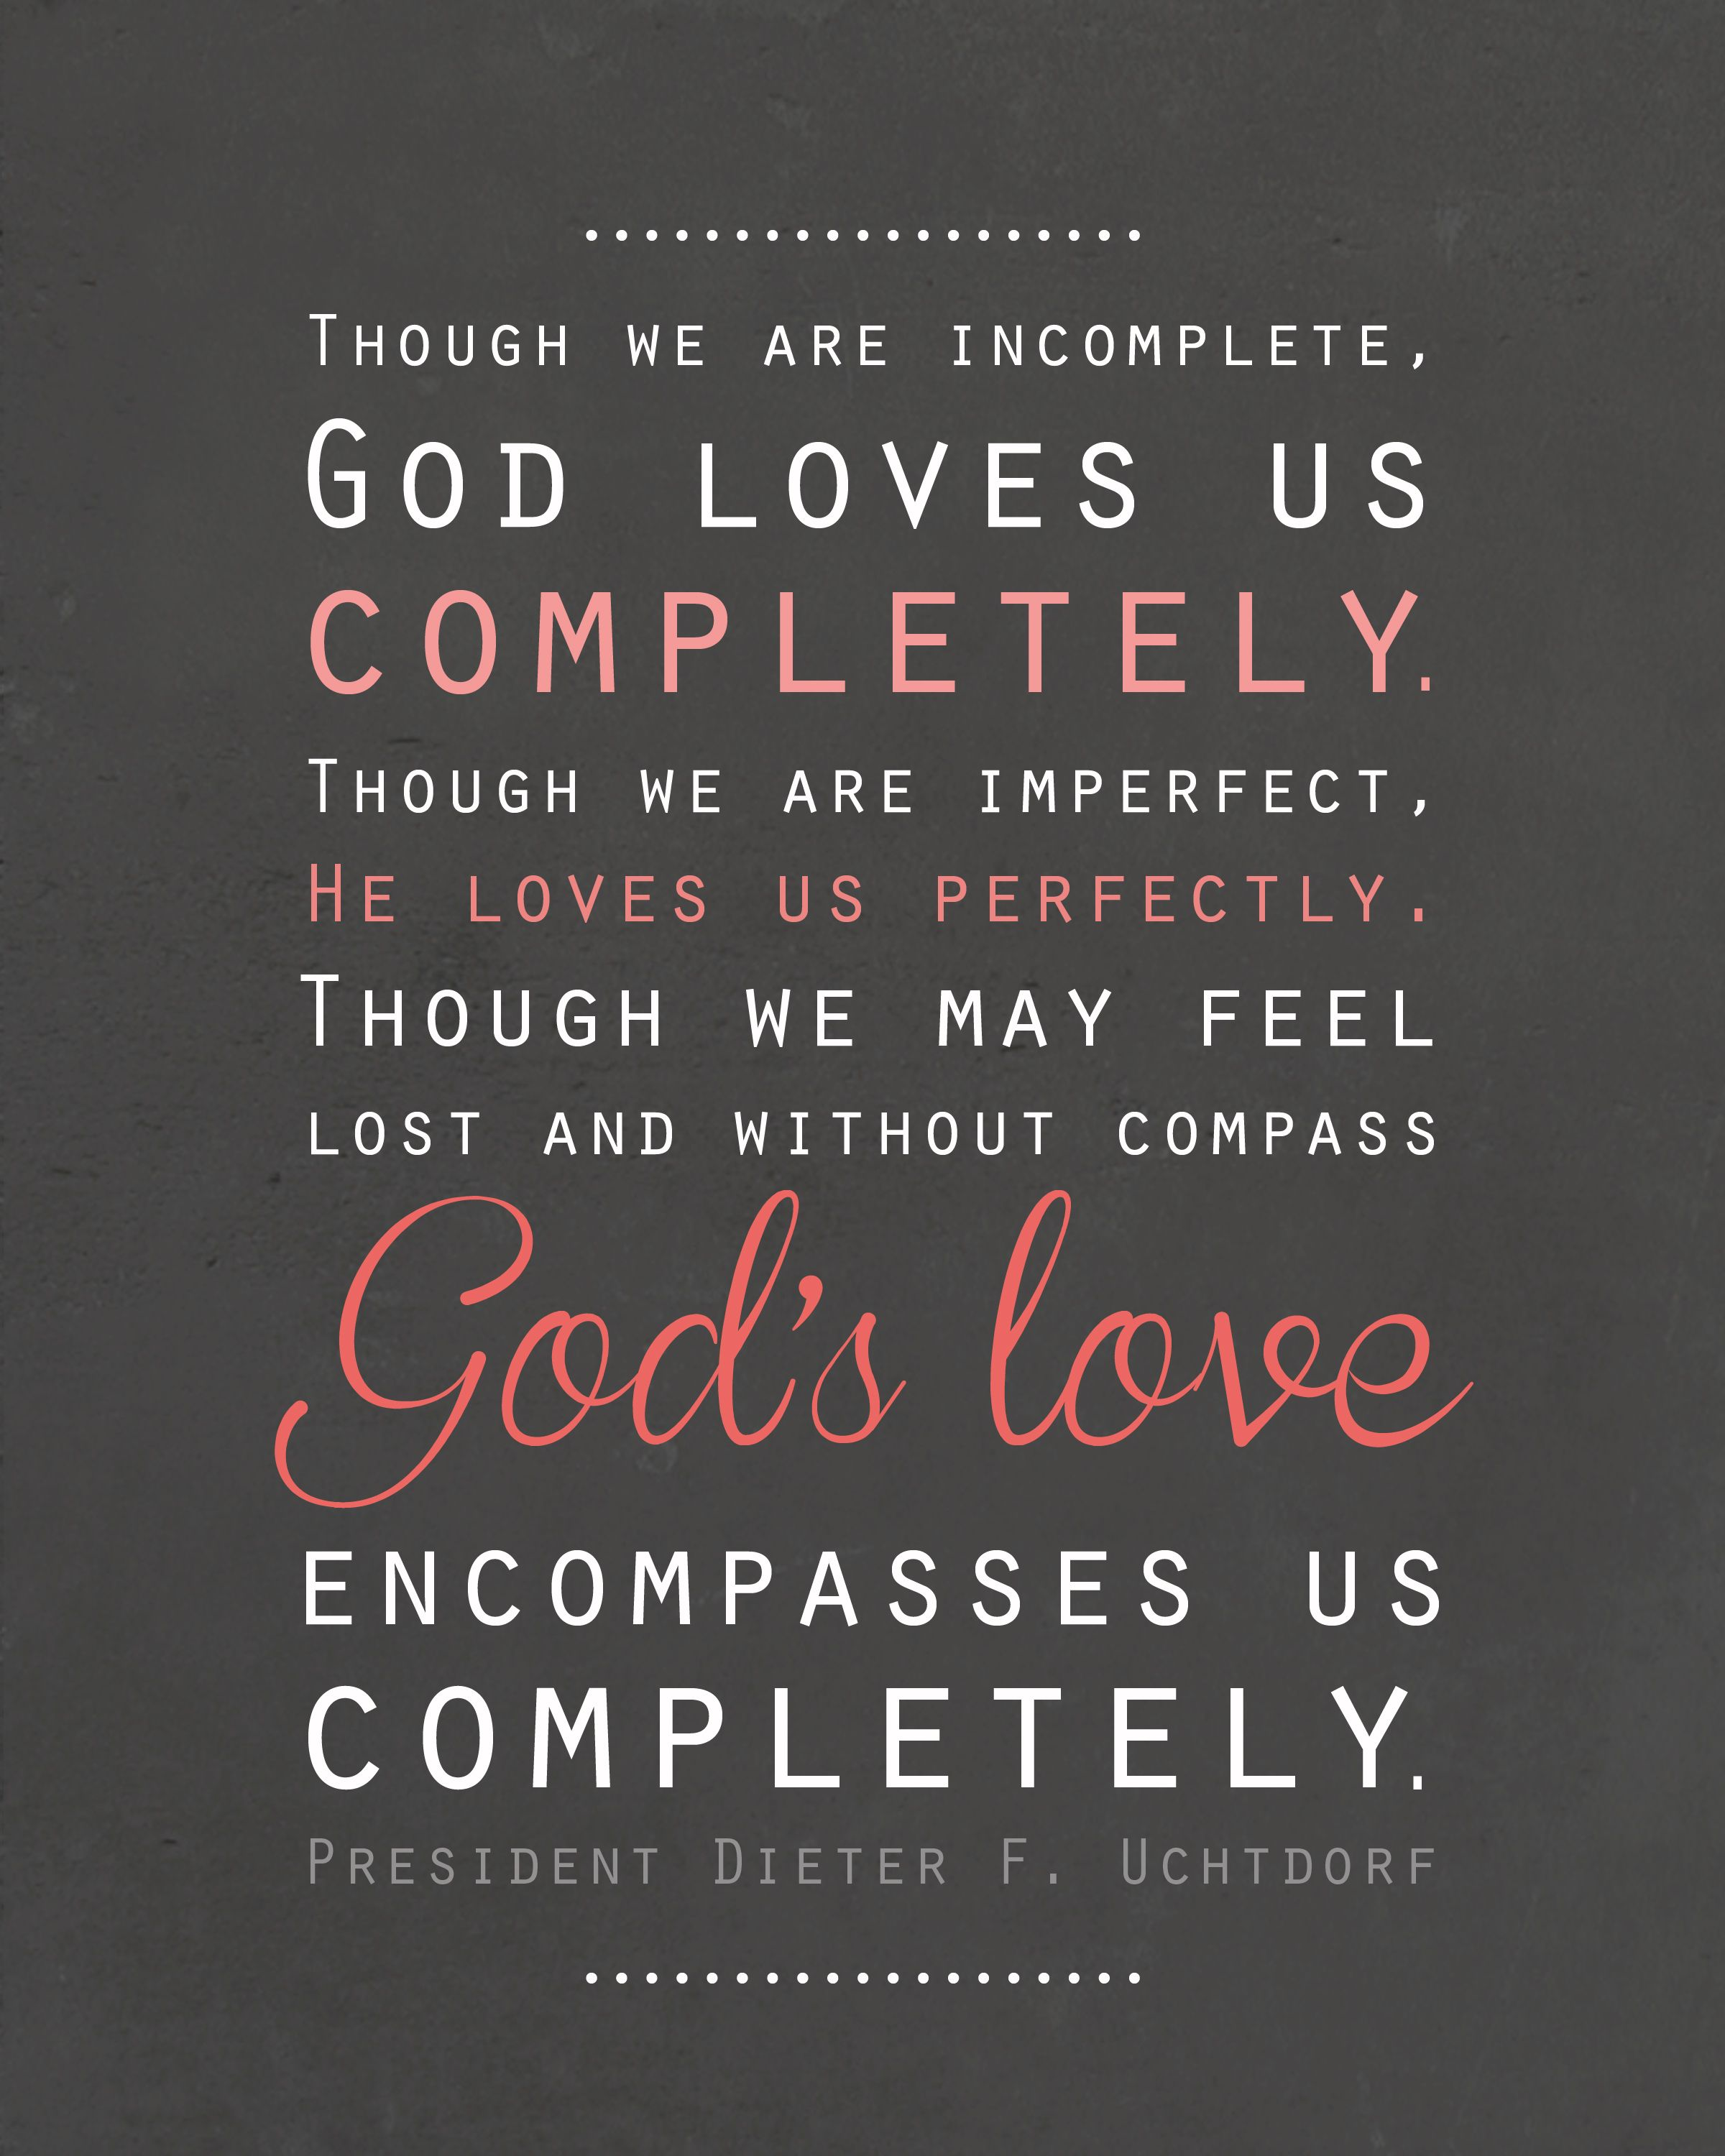 God's Love Quotes Free Lds Printable Artwork  Pinterest  Free Churches And